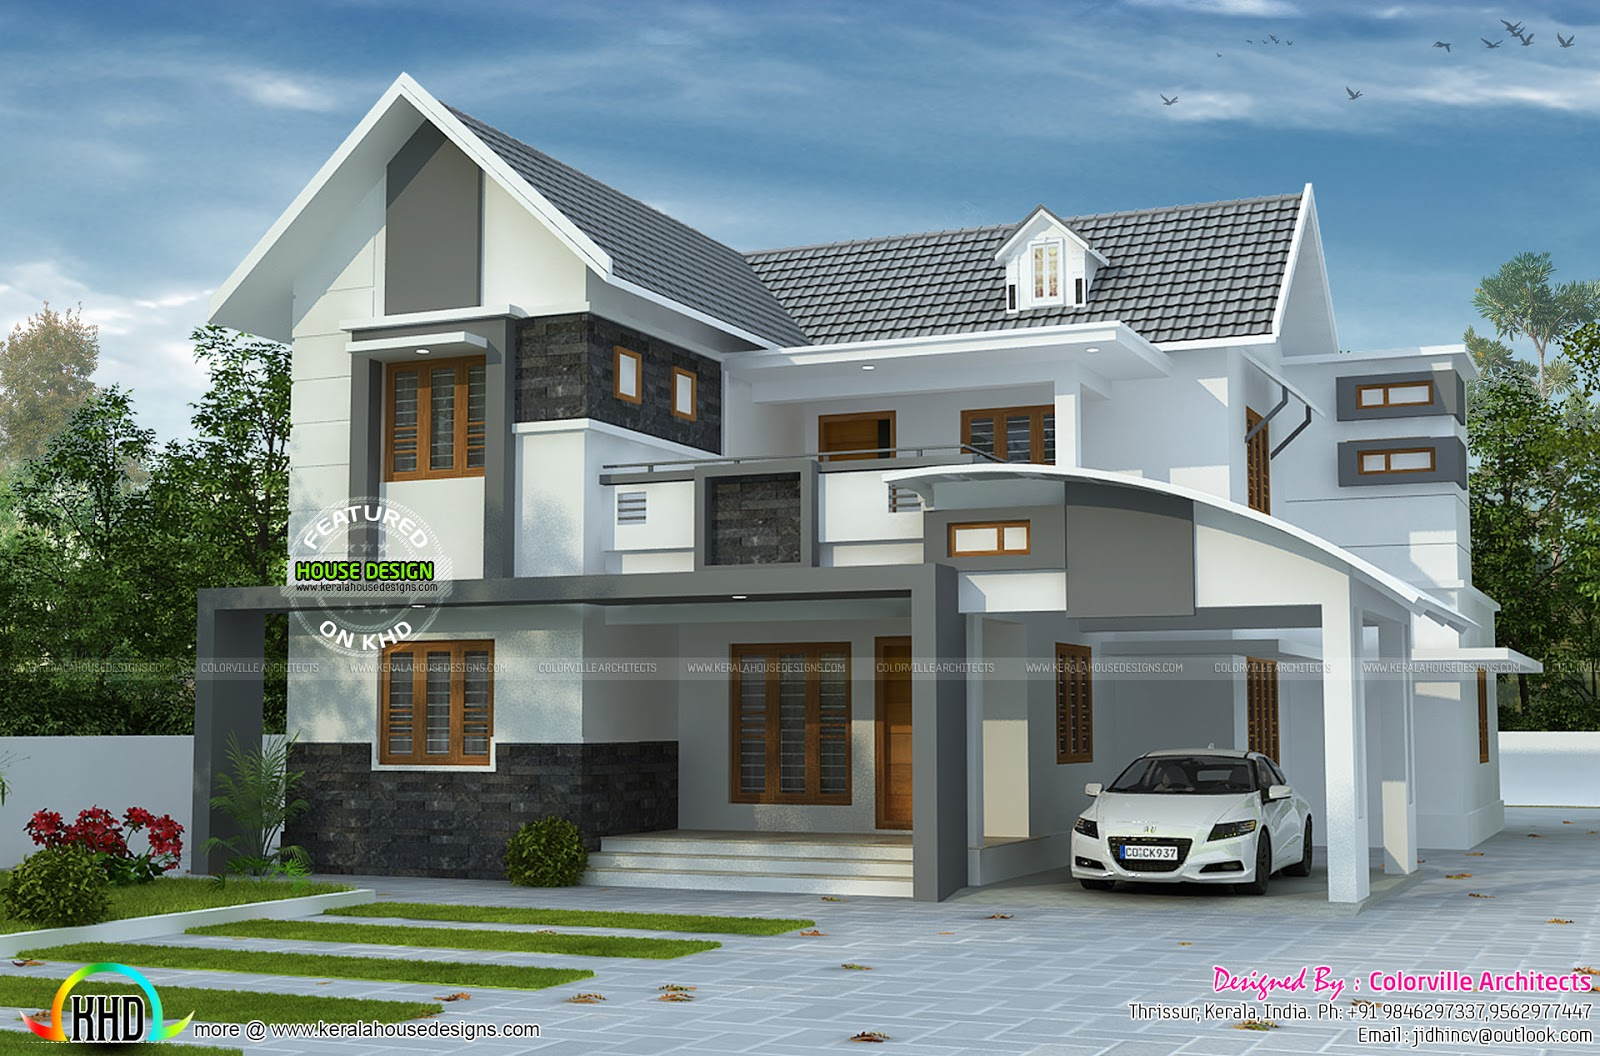 House plan by colorville architects kerala home design for Home plans and designs